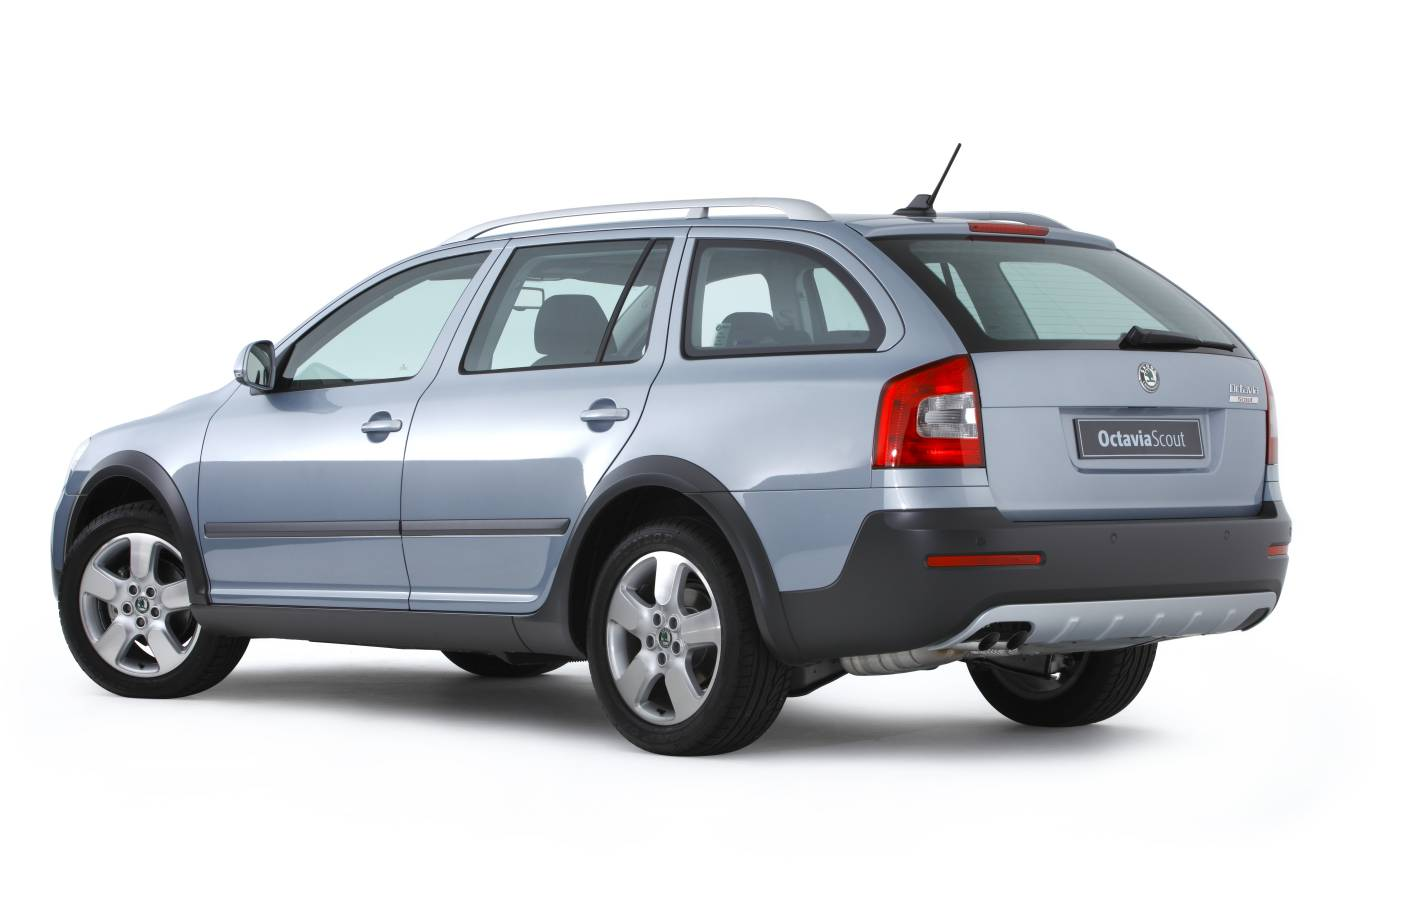 otomotif modern skoda octavia scout tdi 4x4 wagon cars. Black Bedroom Furniture Sets. Home Design Ideas